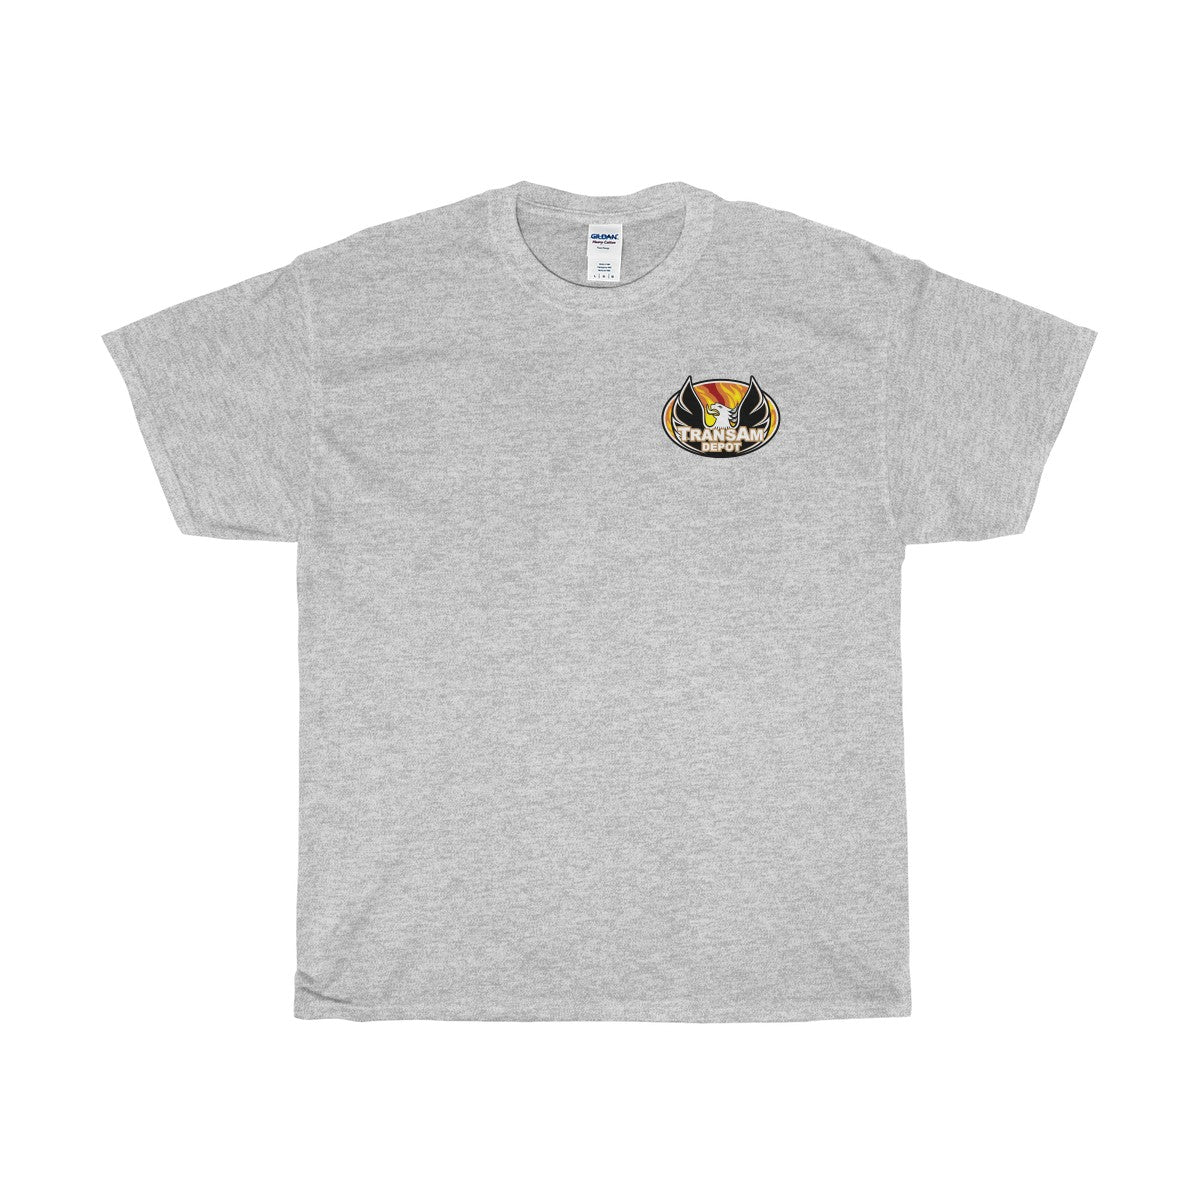 Trans Am Depot Shop Shirt- Heavy Cotton Tee